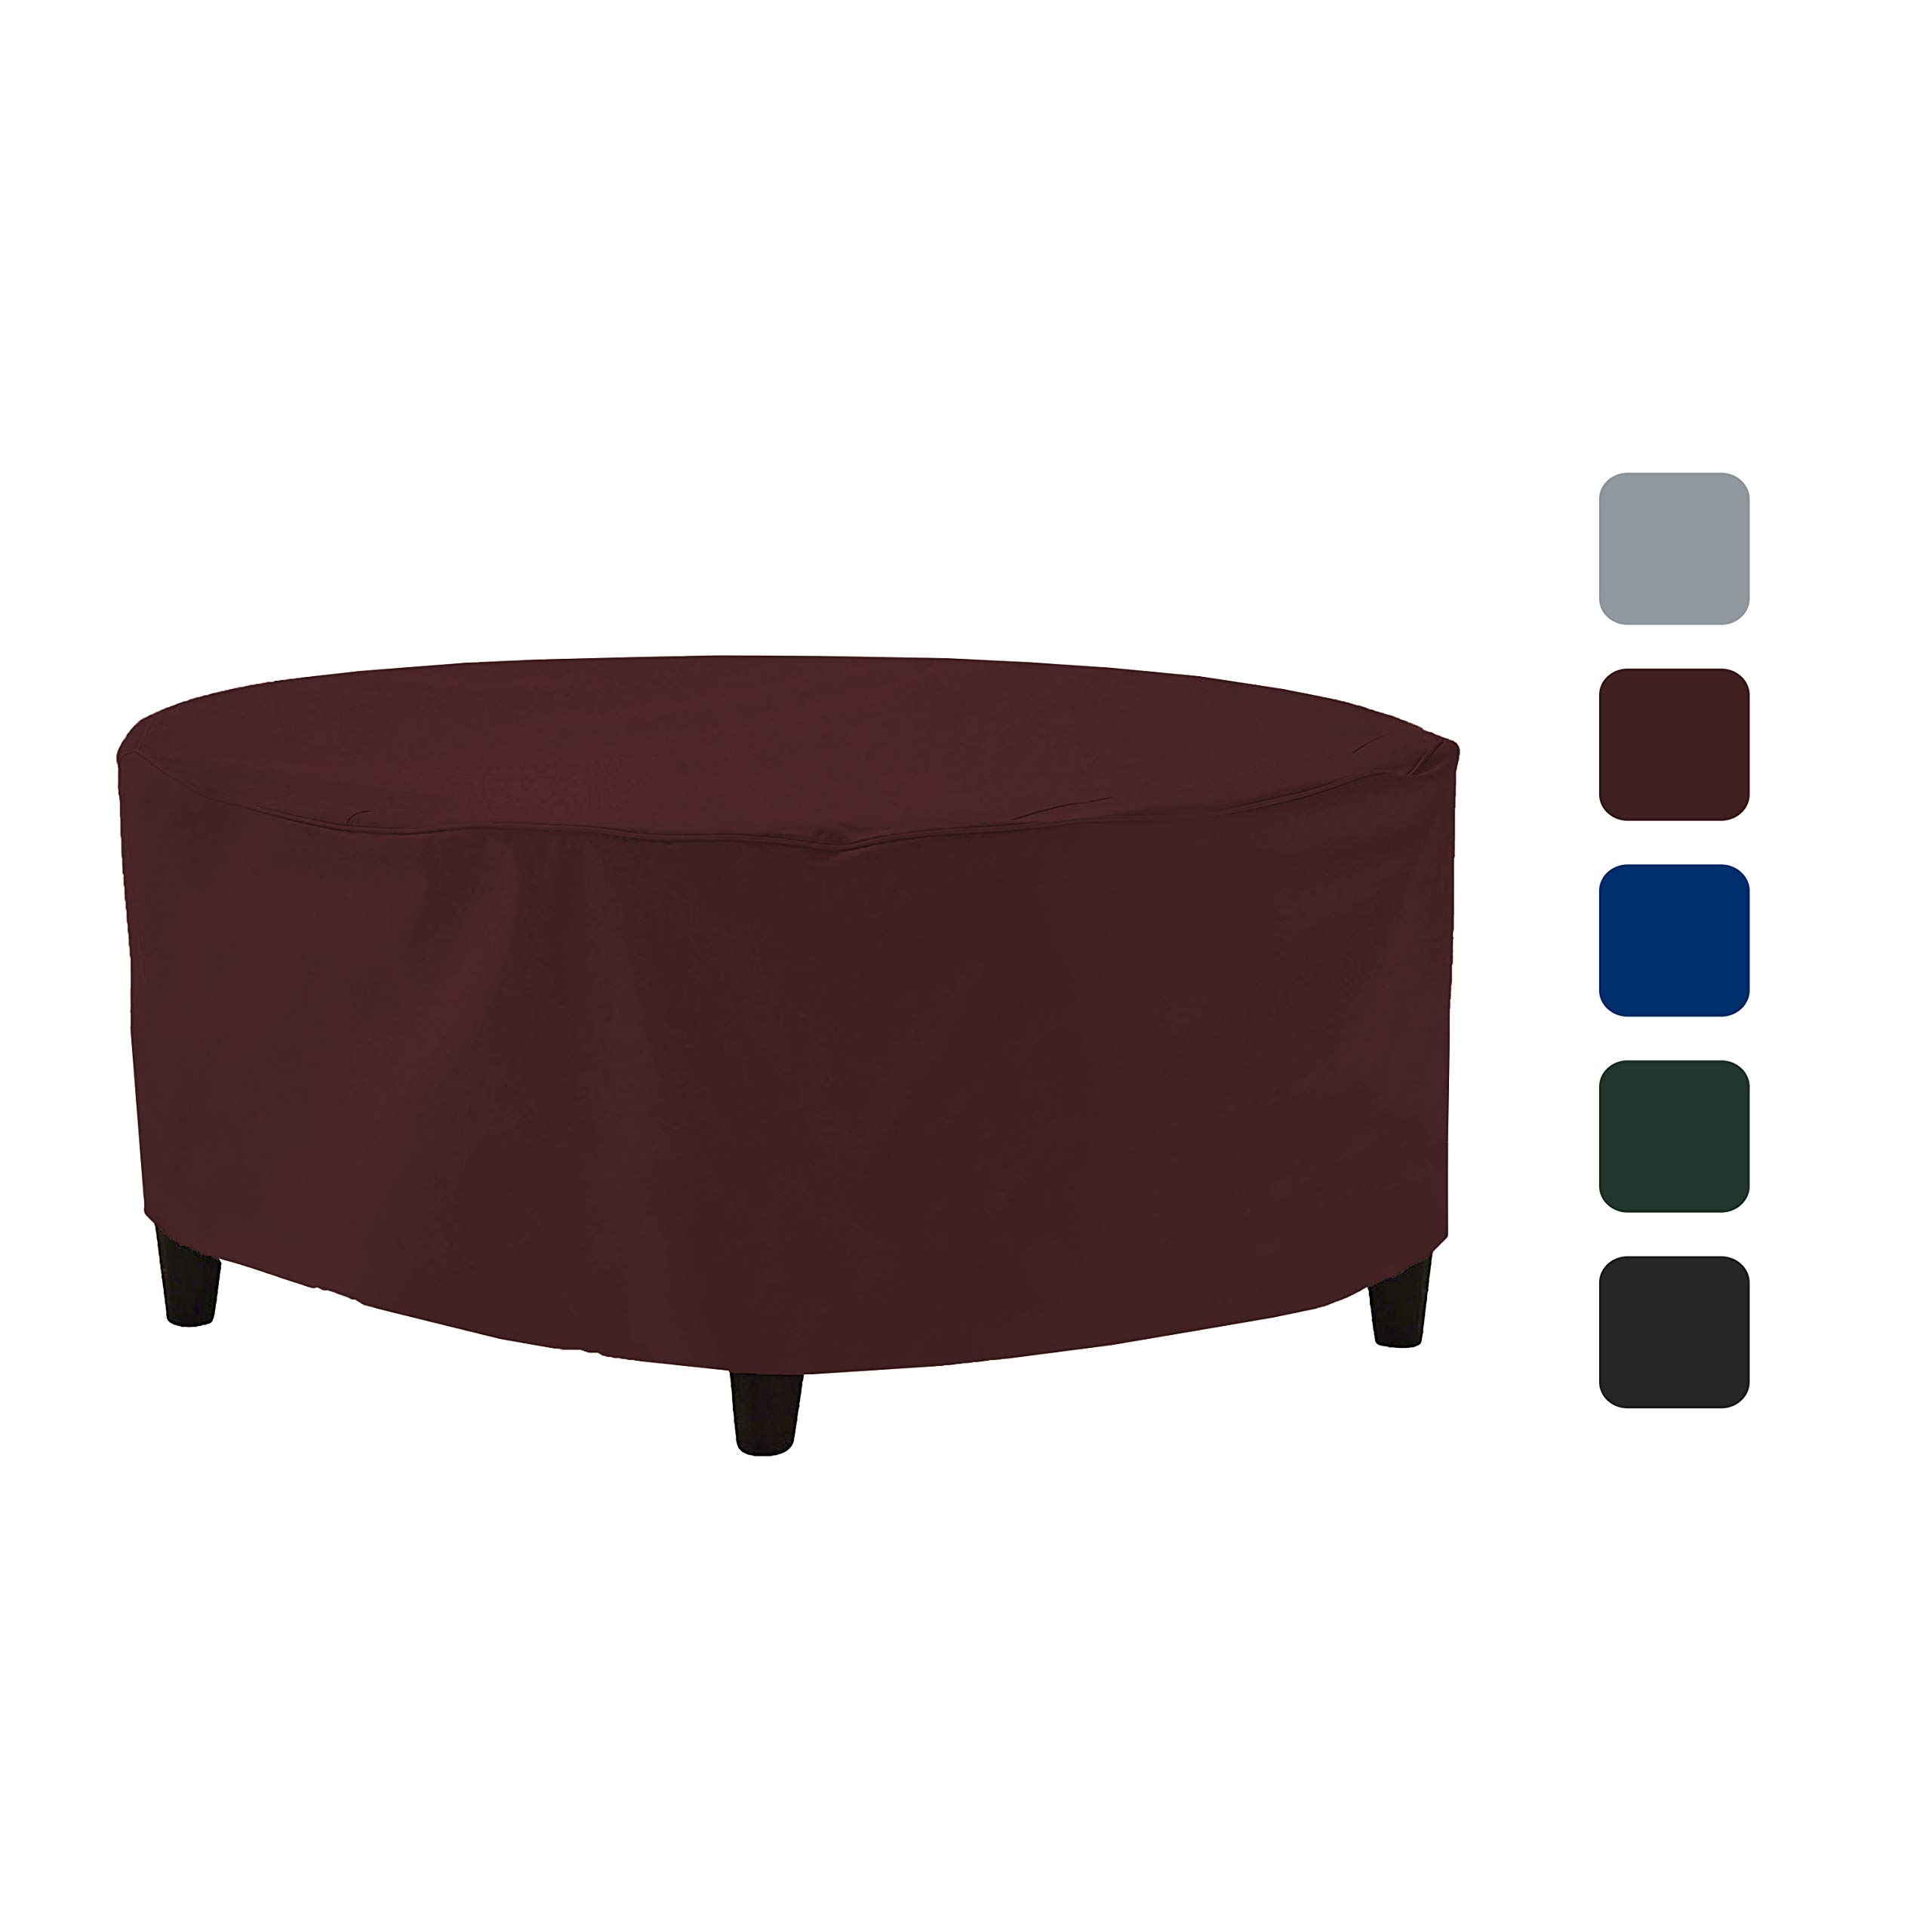 Outdoor Ottoman Cover 18 Oz - Waterproof & Weather Resistant Patio Furniture Covers - Round Ottoman Cover Heavy Duty Fabric with Drawstring for Snug fit (50'' Dia x 24'' H, Burgundy) by COVERS & ALL (Image #8)